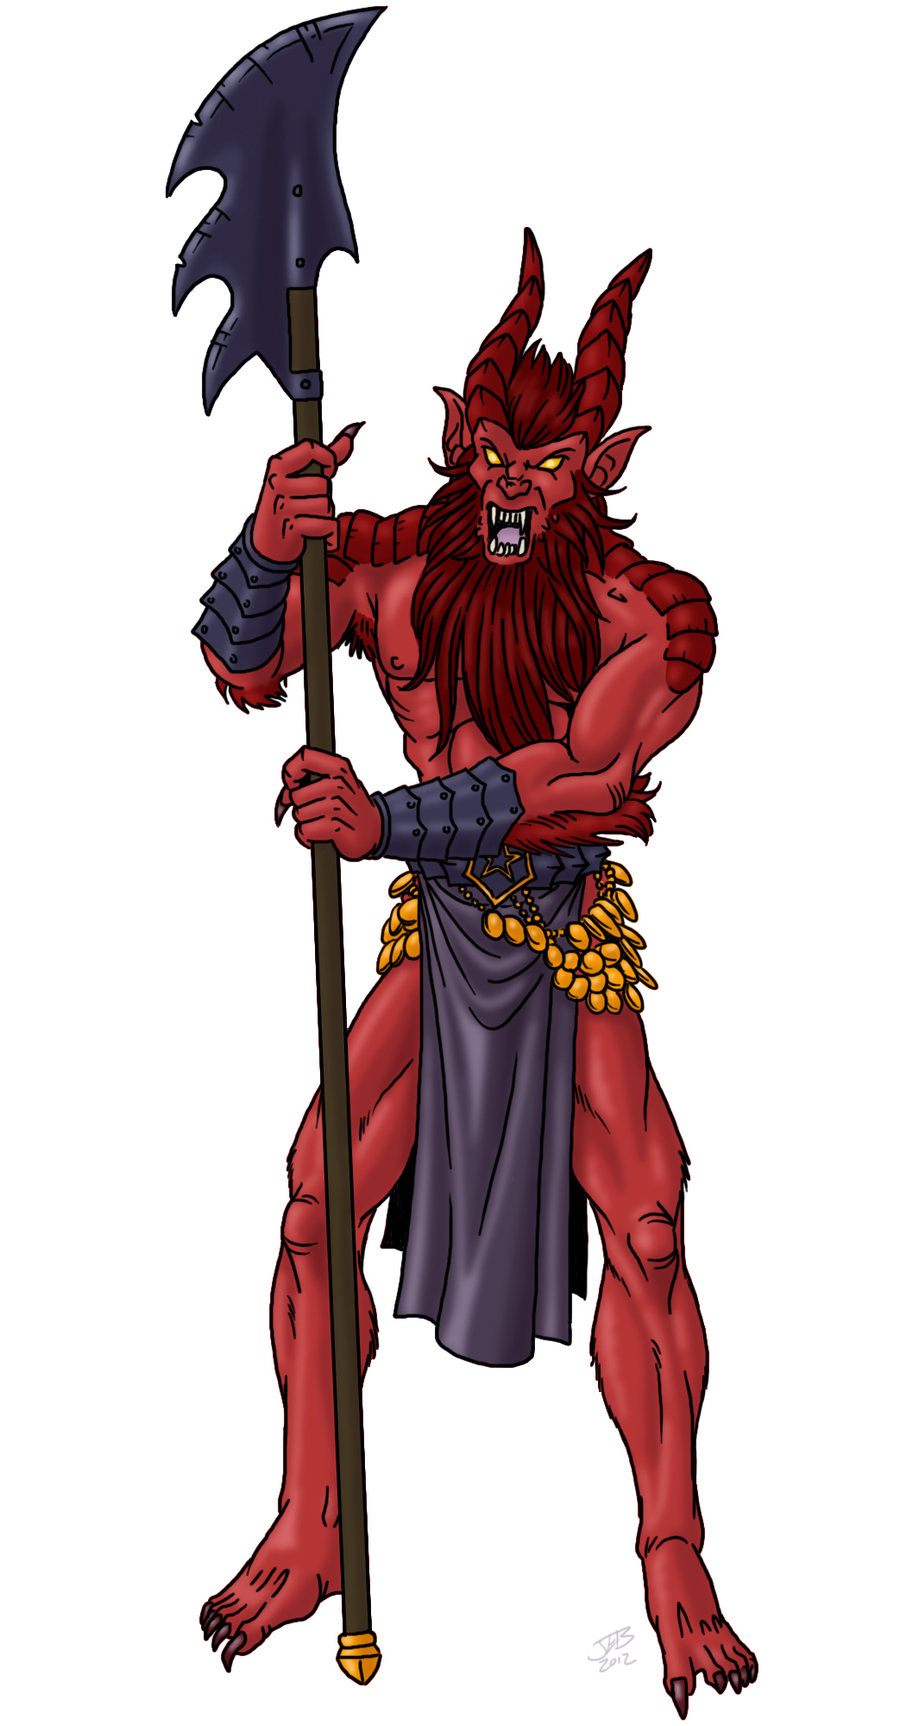 bearded_devil_by_prodigyduck-d5e0g3x.jpg